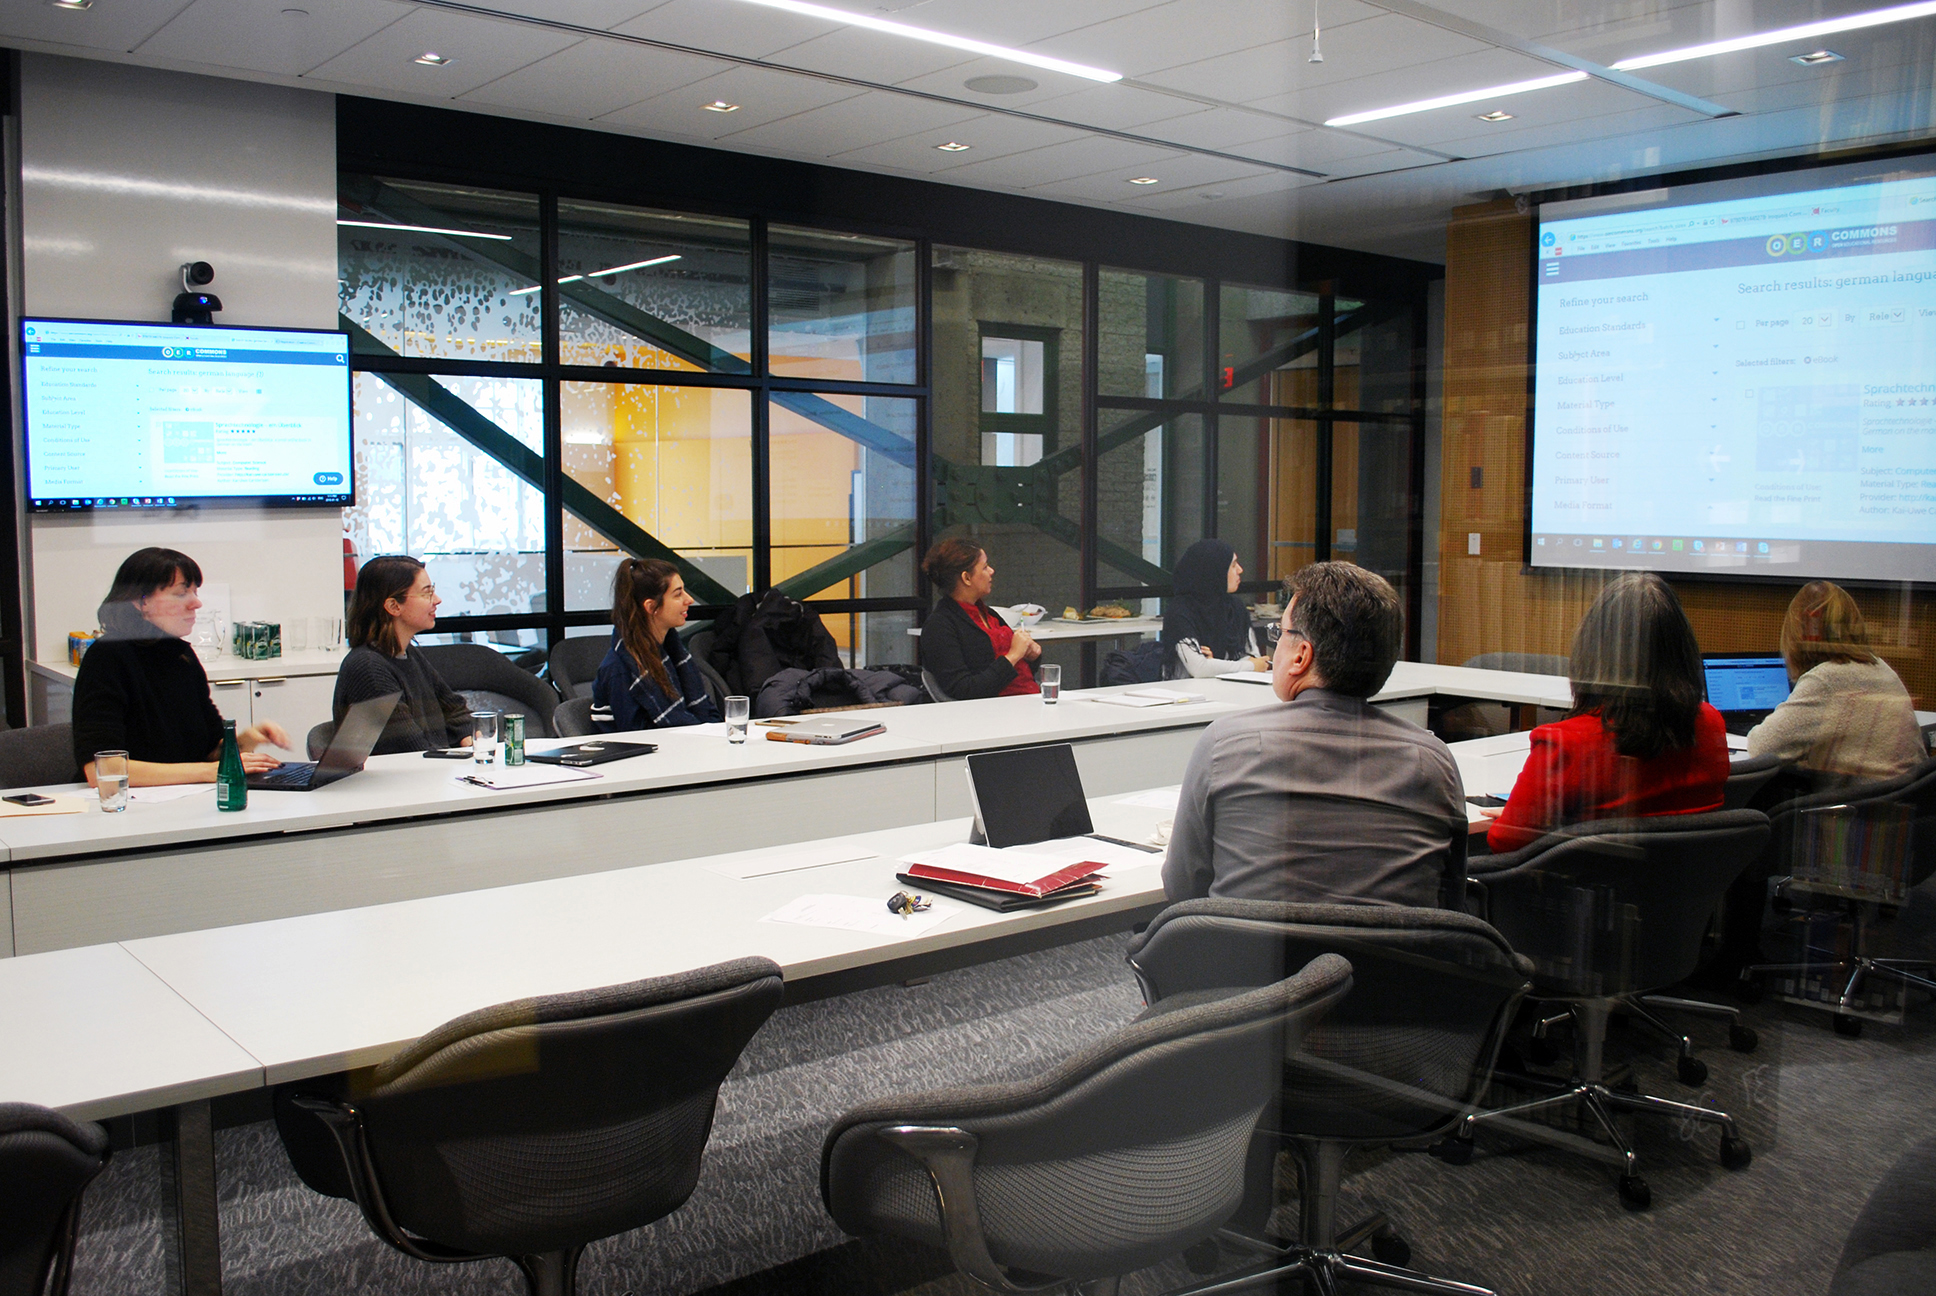 Members of the Library Services Fund watching a presentation in a conference room